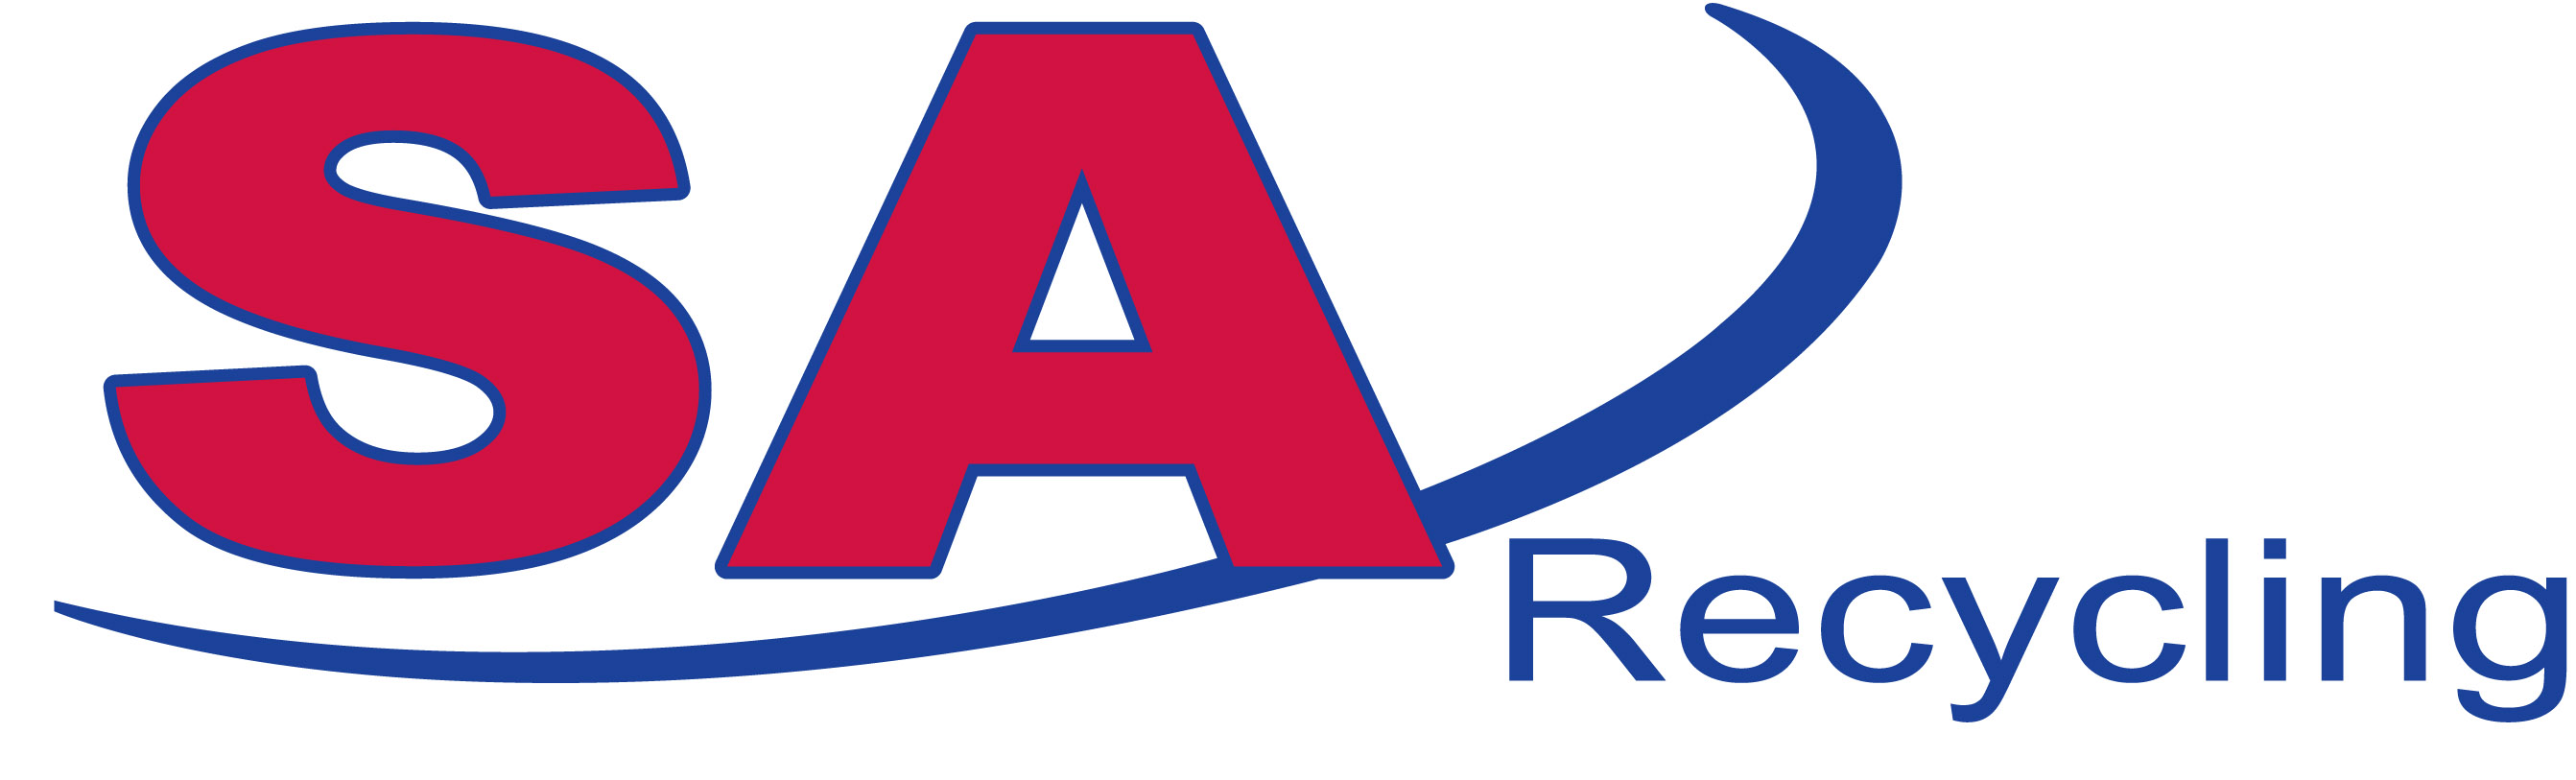 SA_Recycling_Logo_final.jpg